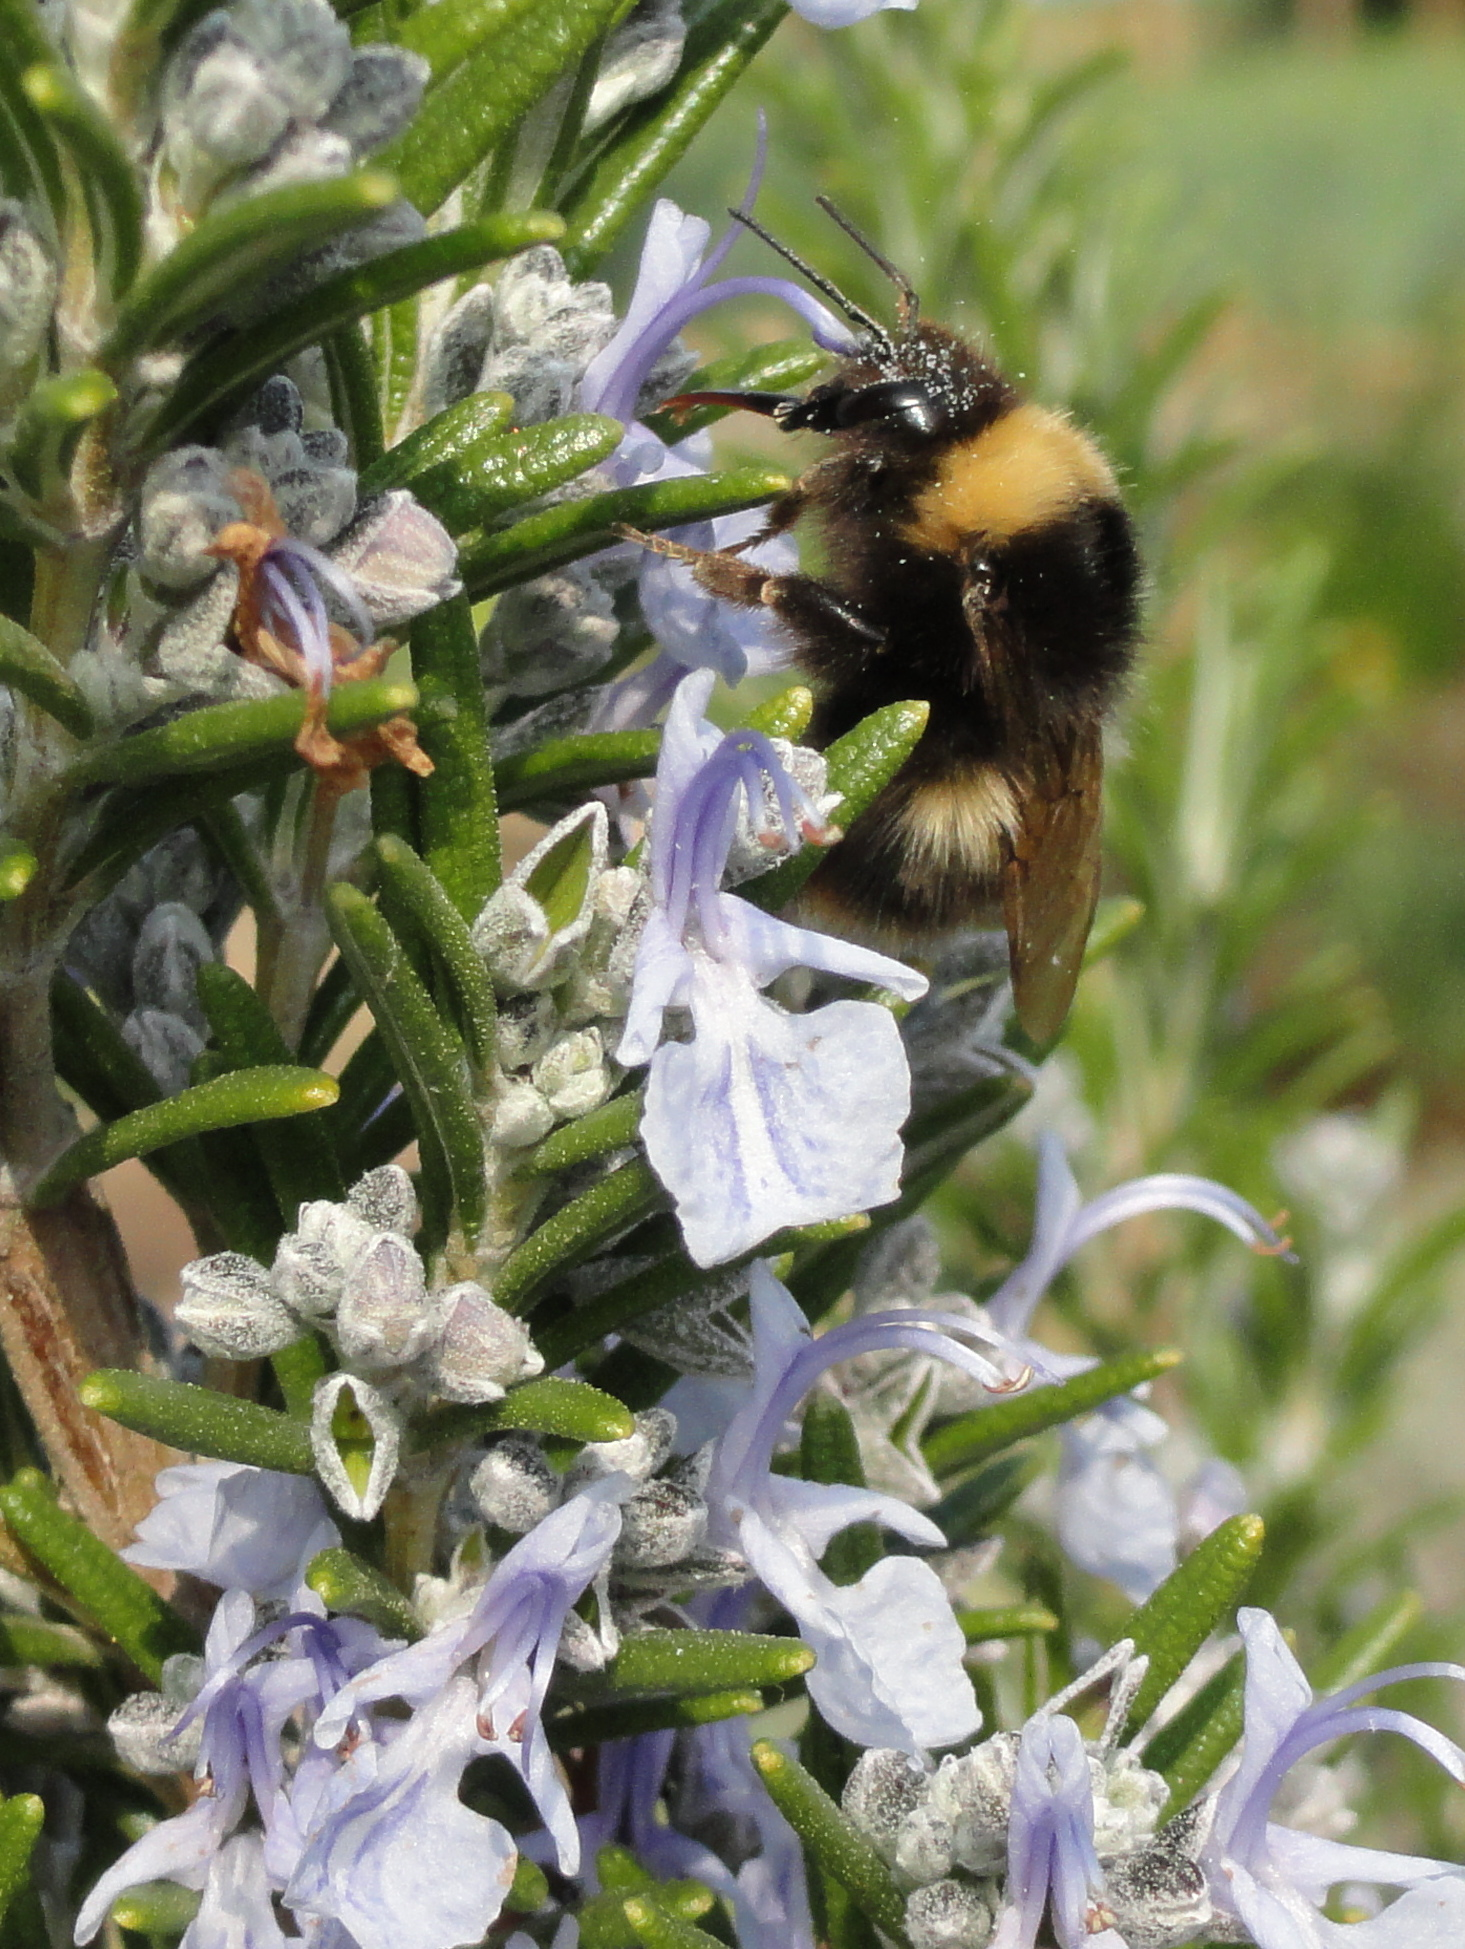 A bee on rosemary